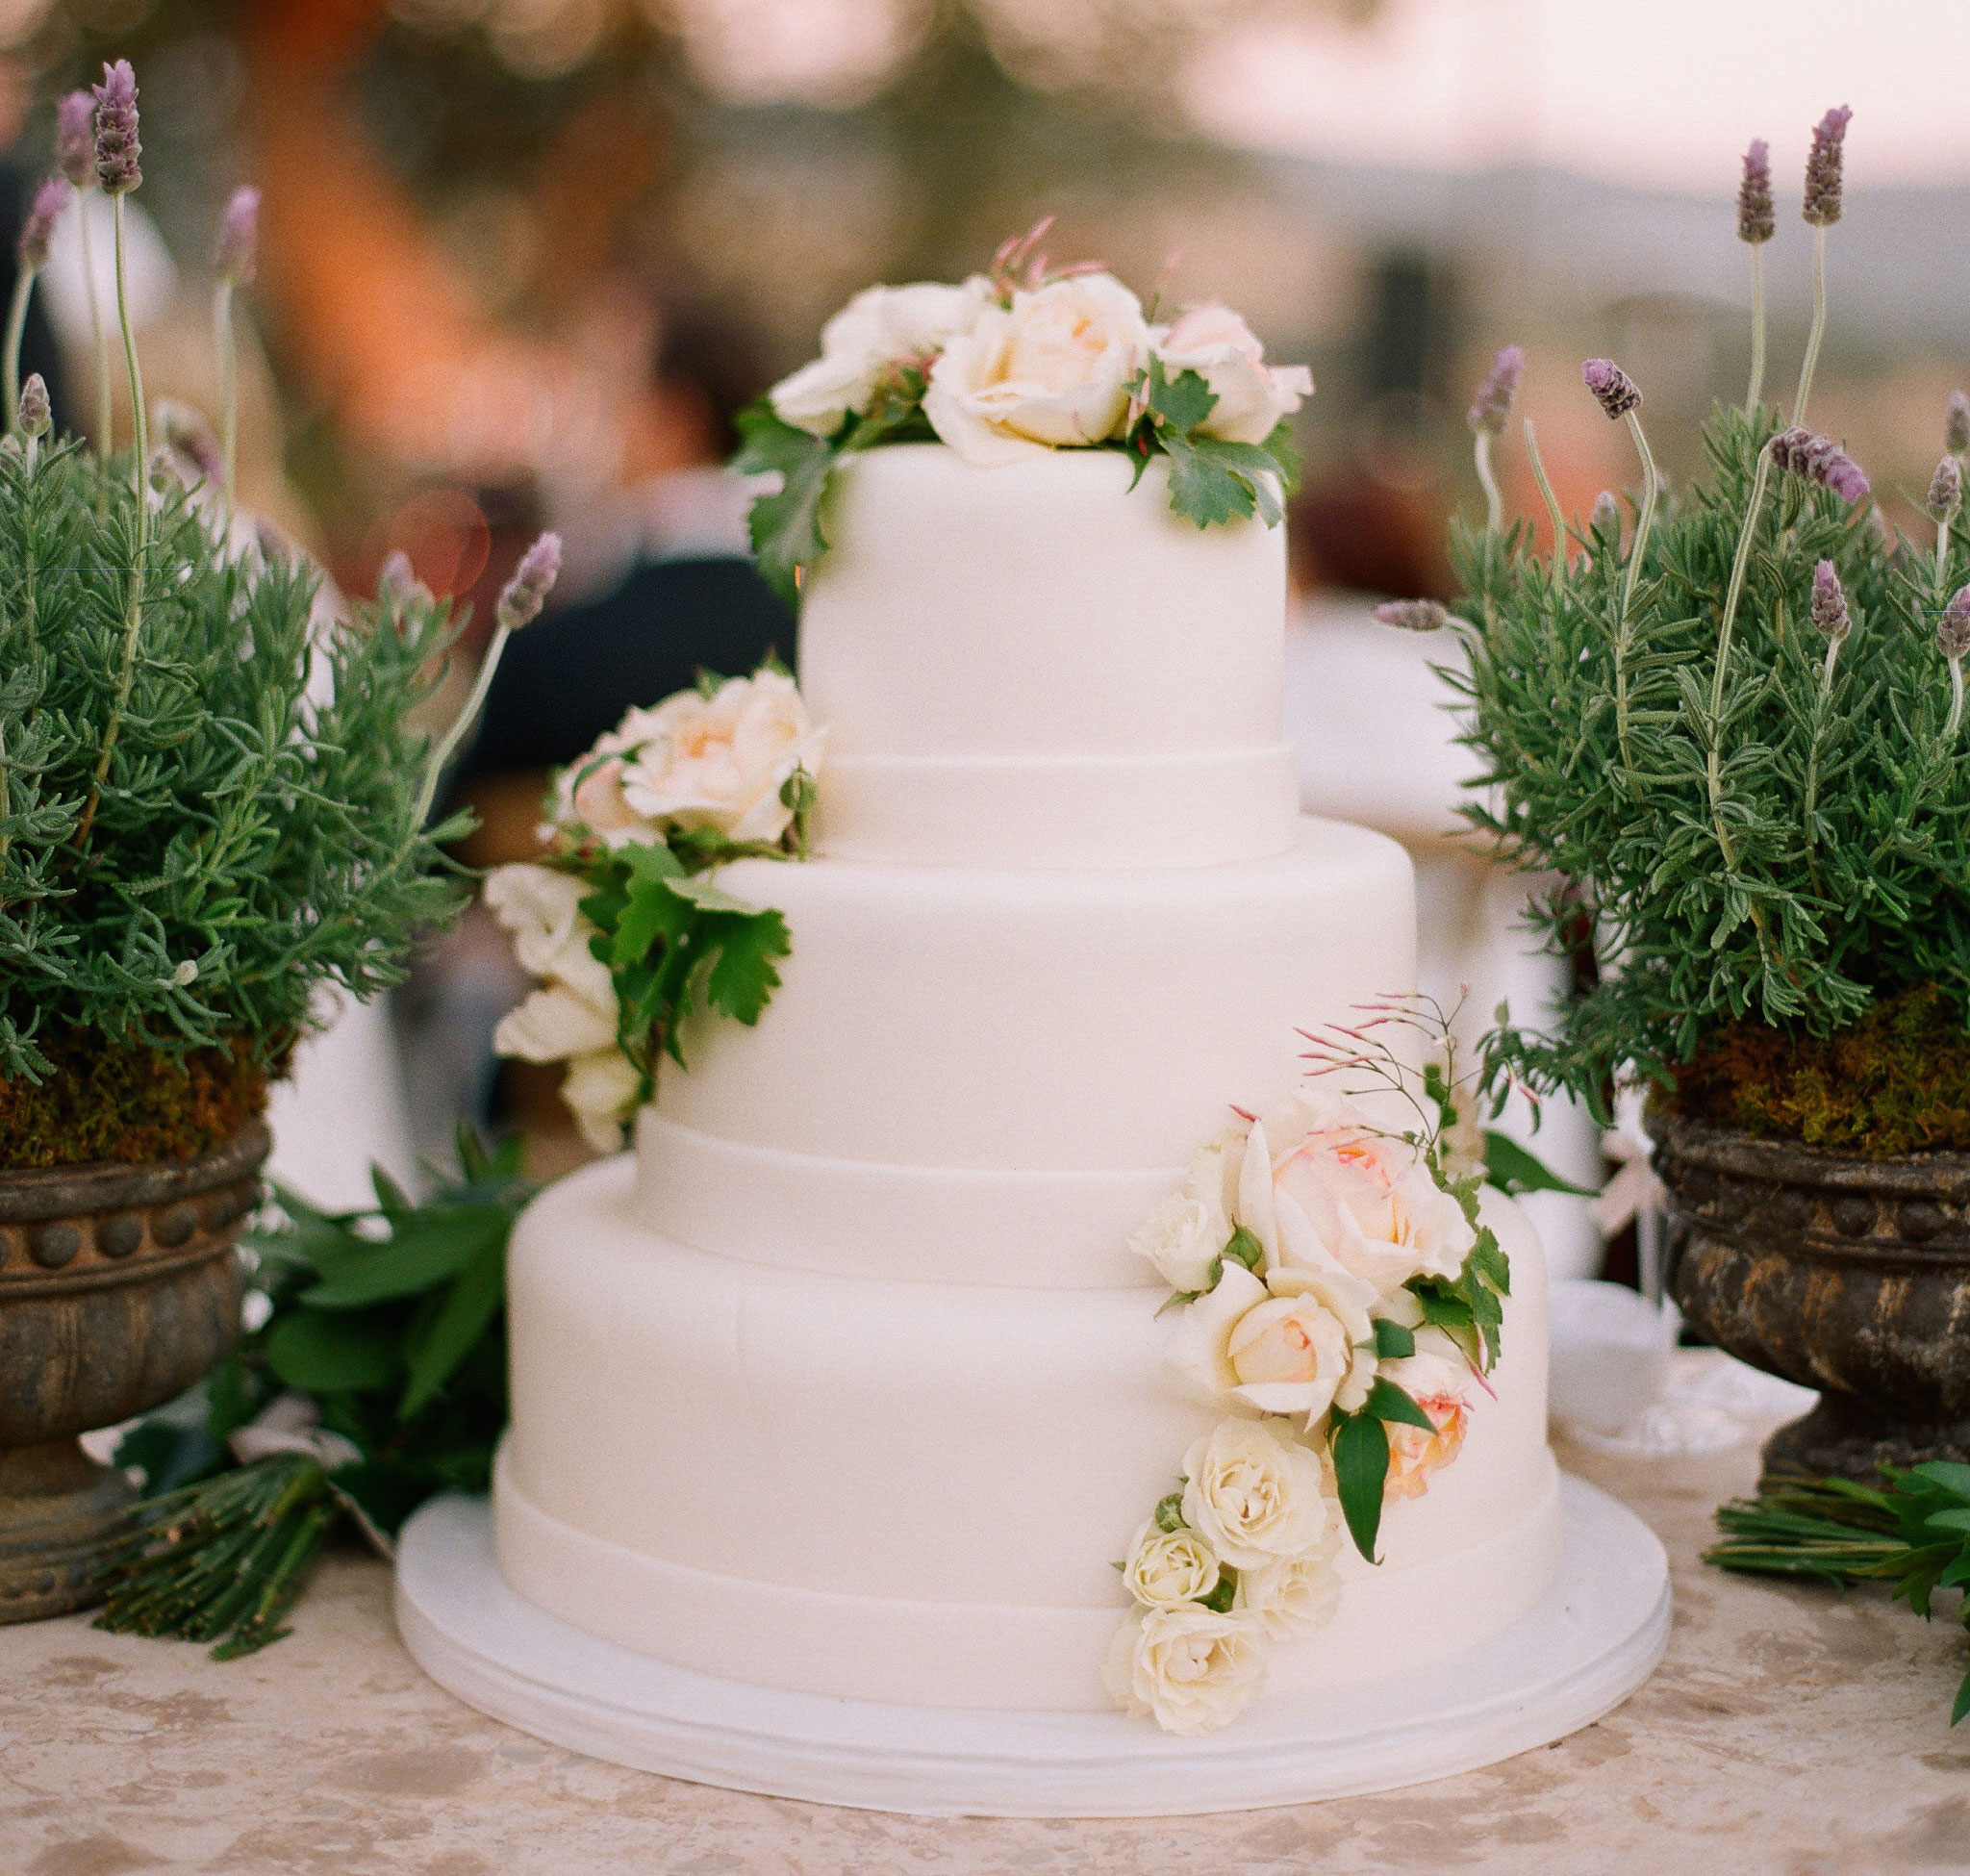 White wedding cake with fresh flowers